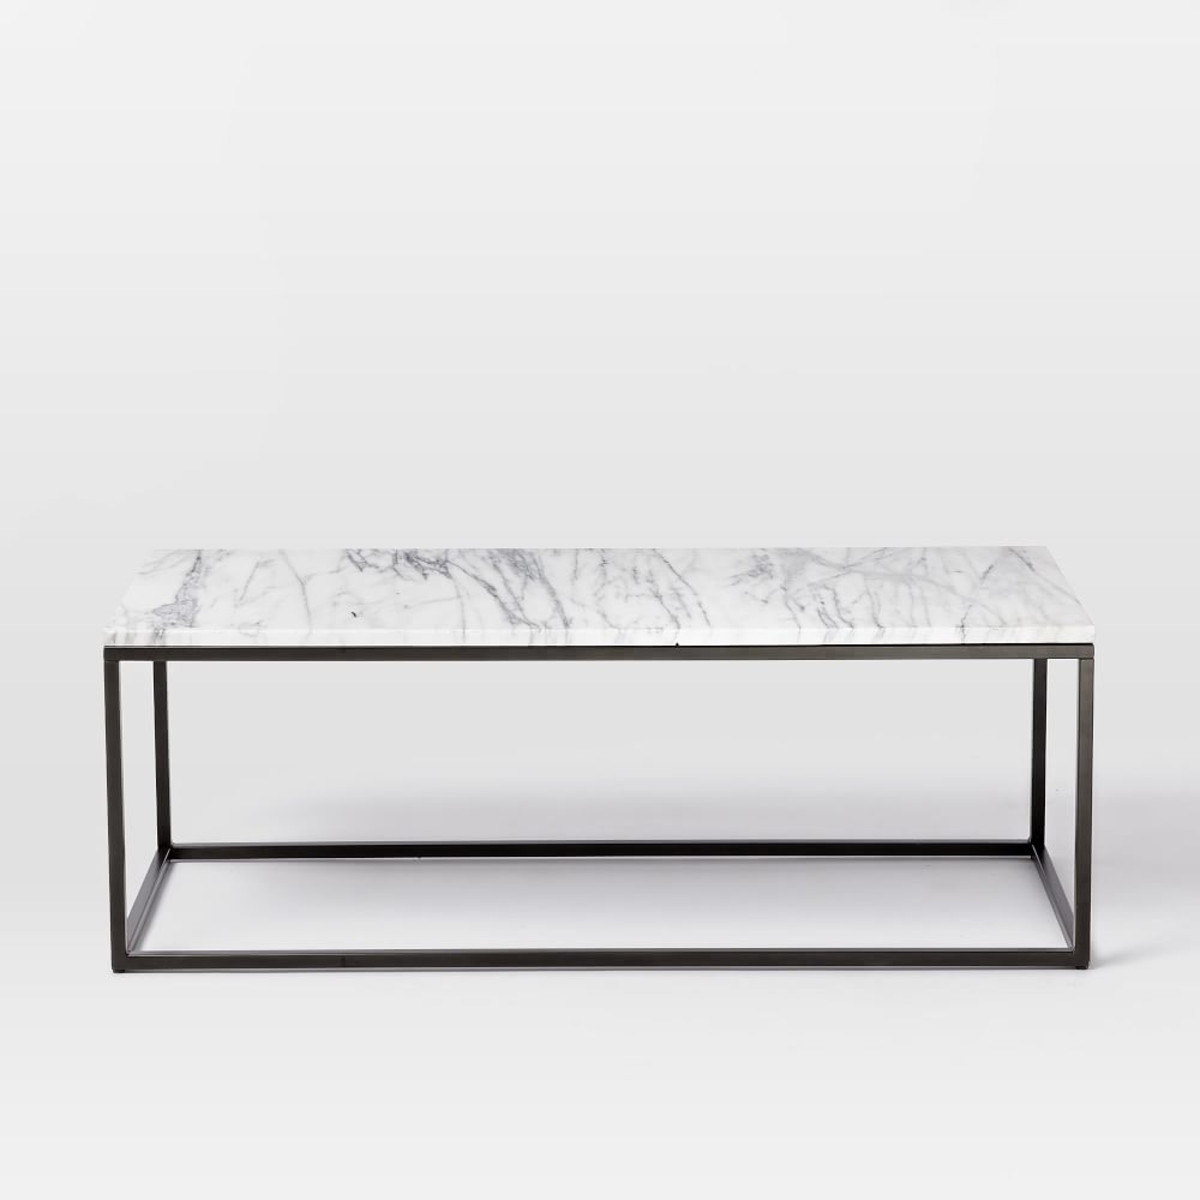 second hand coffee table the super free target black side remarkable marble design dining box frame accent corner kitchen ikea shelf entry console christmas paper tablecloths